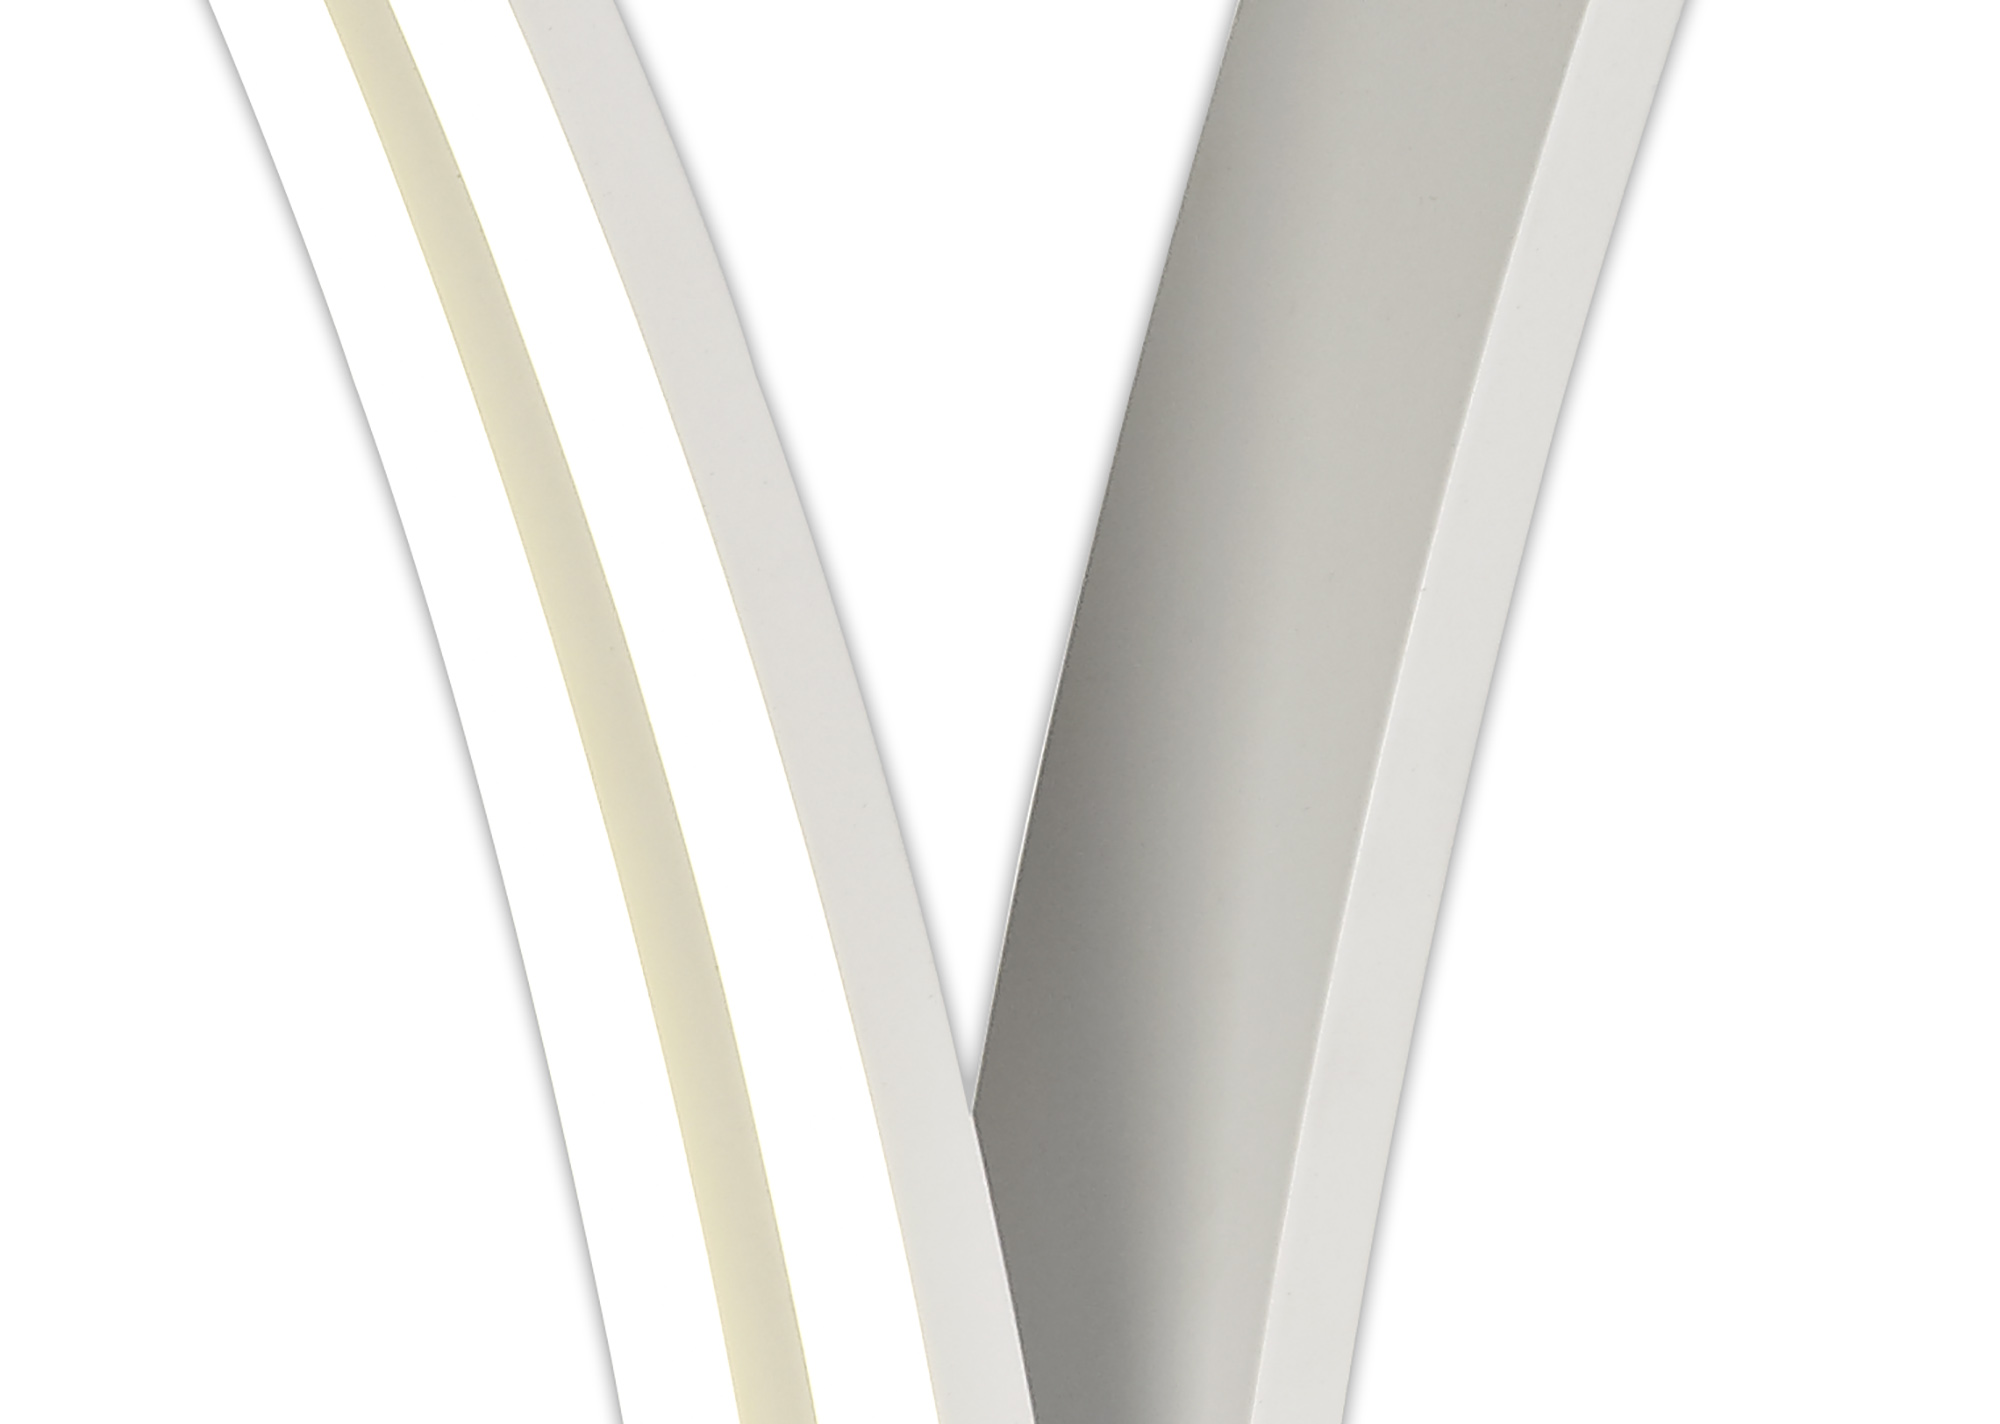 2 Light Table Lamp Switched, 5W/7W LED, 4000K, 757lm, White, 3yrs Warranty